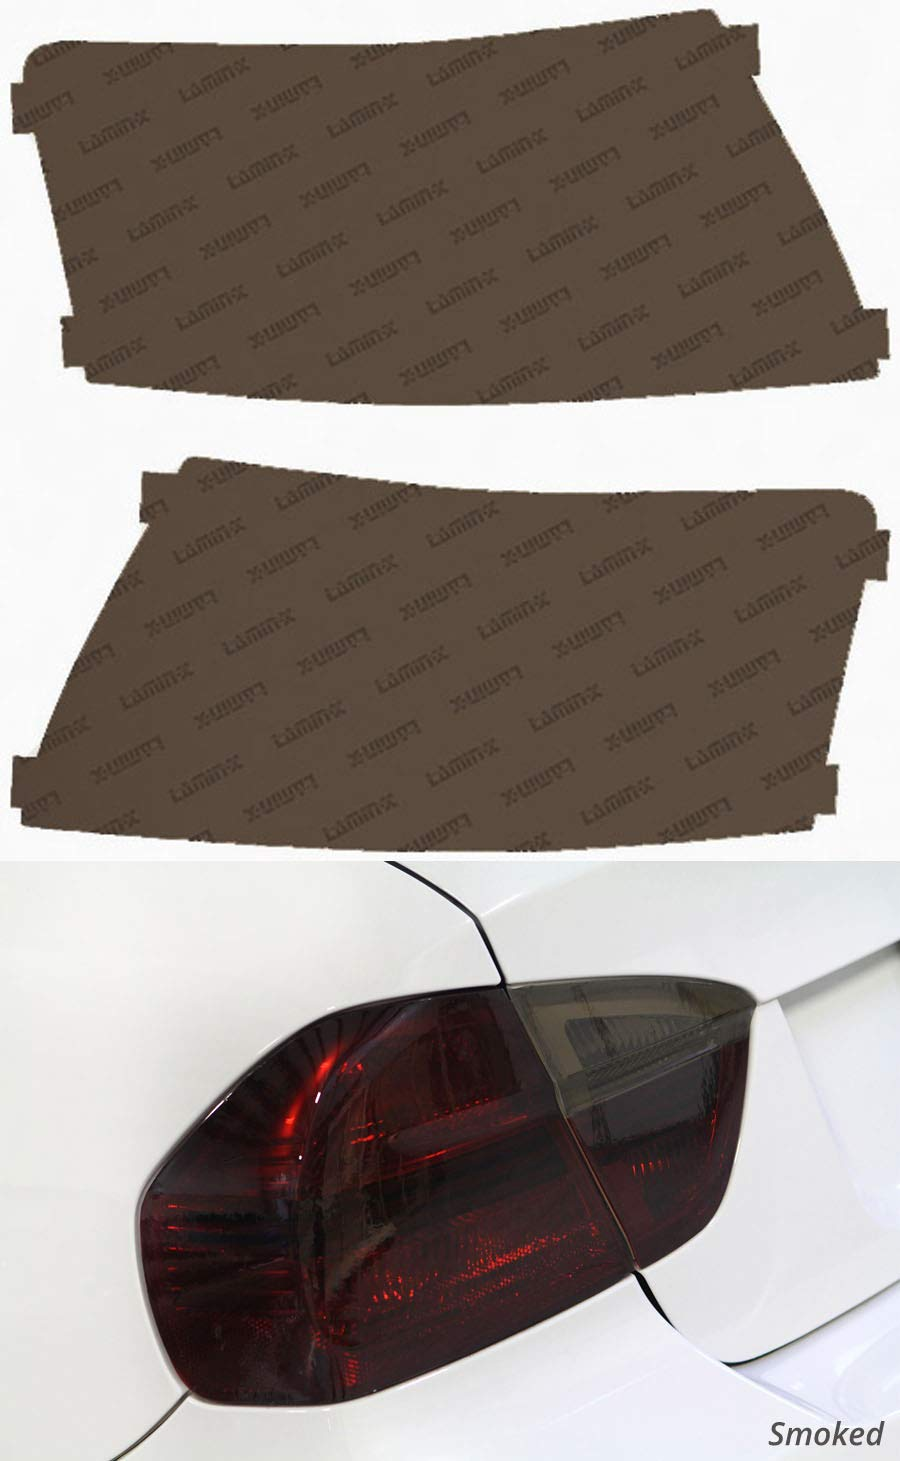 Lamin-x A209S Smoked Tail Light Film Covers